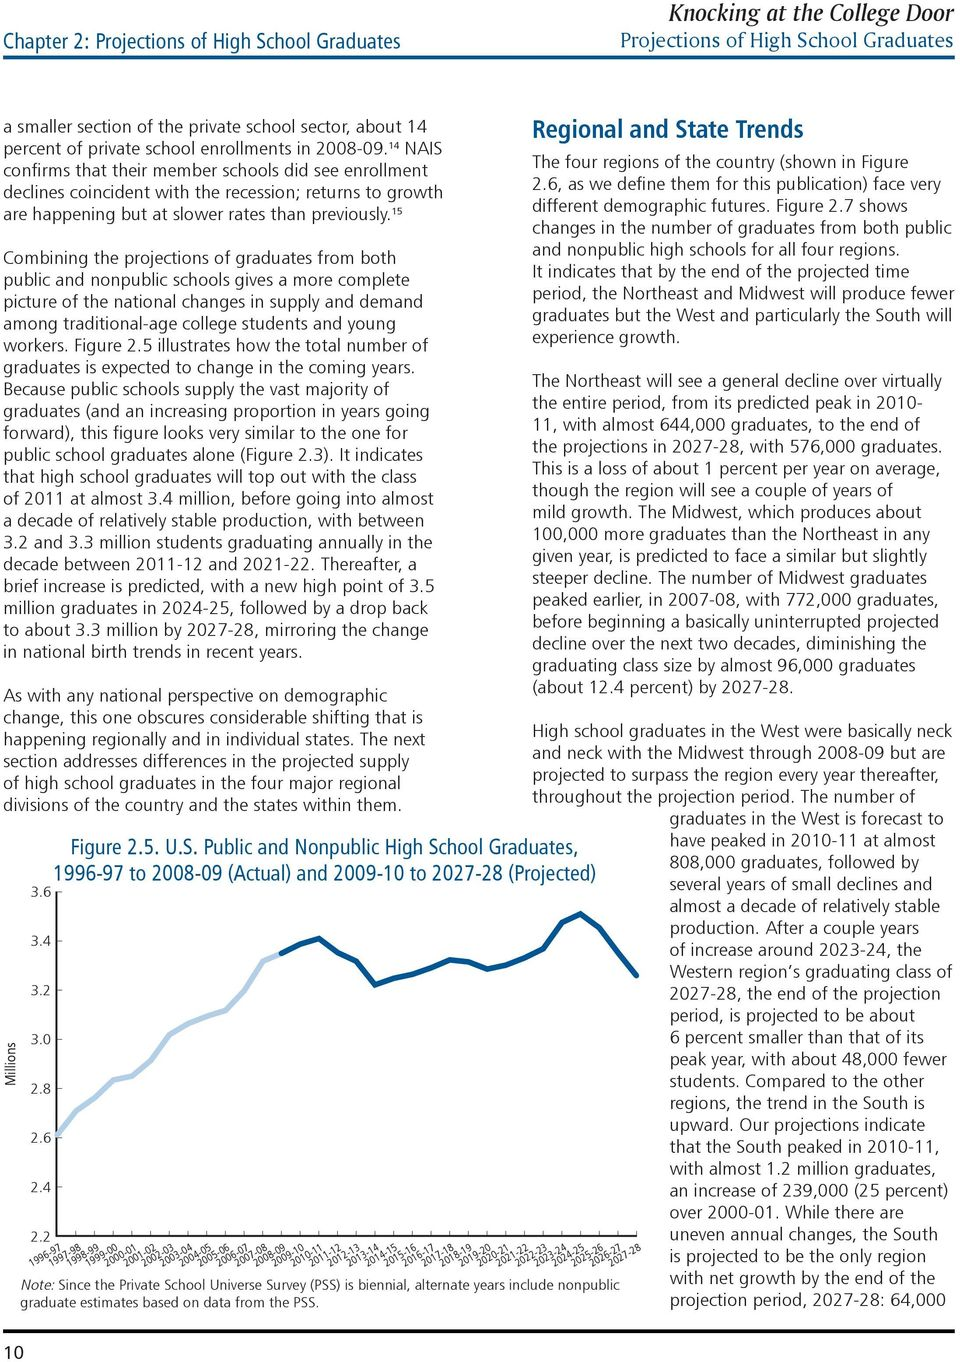 15 Combining the projections of graduates from both public and nonpublic schools gives a more complete picture of the national changes in supply and demand among traditional-age college students and